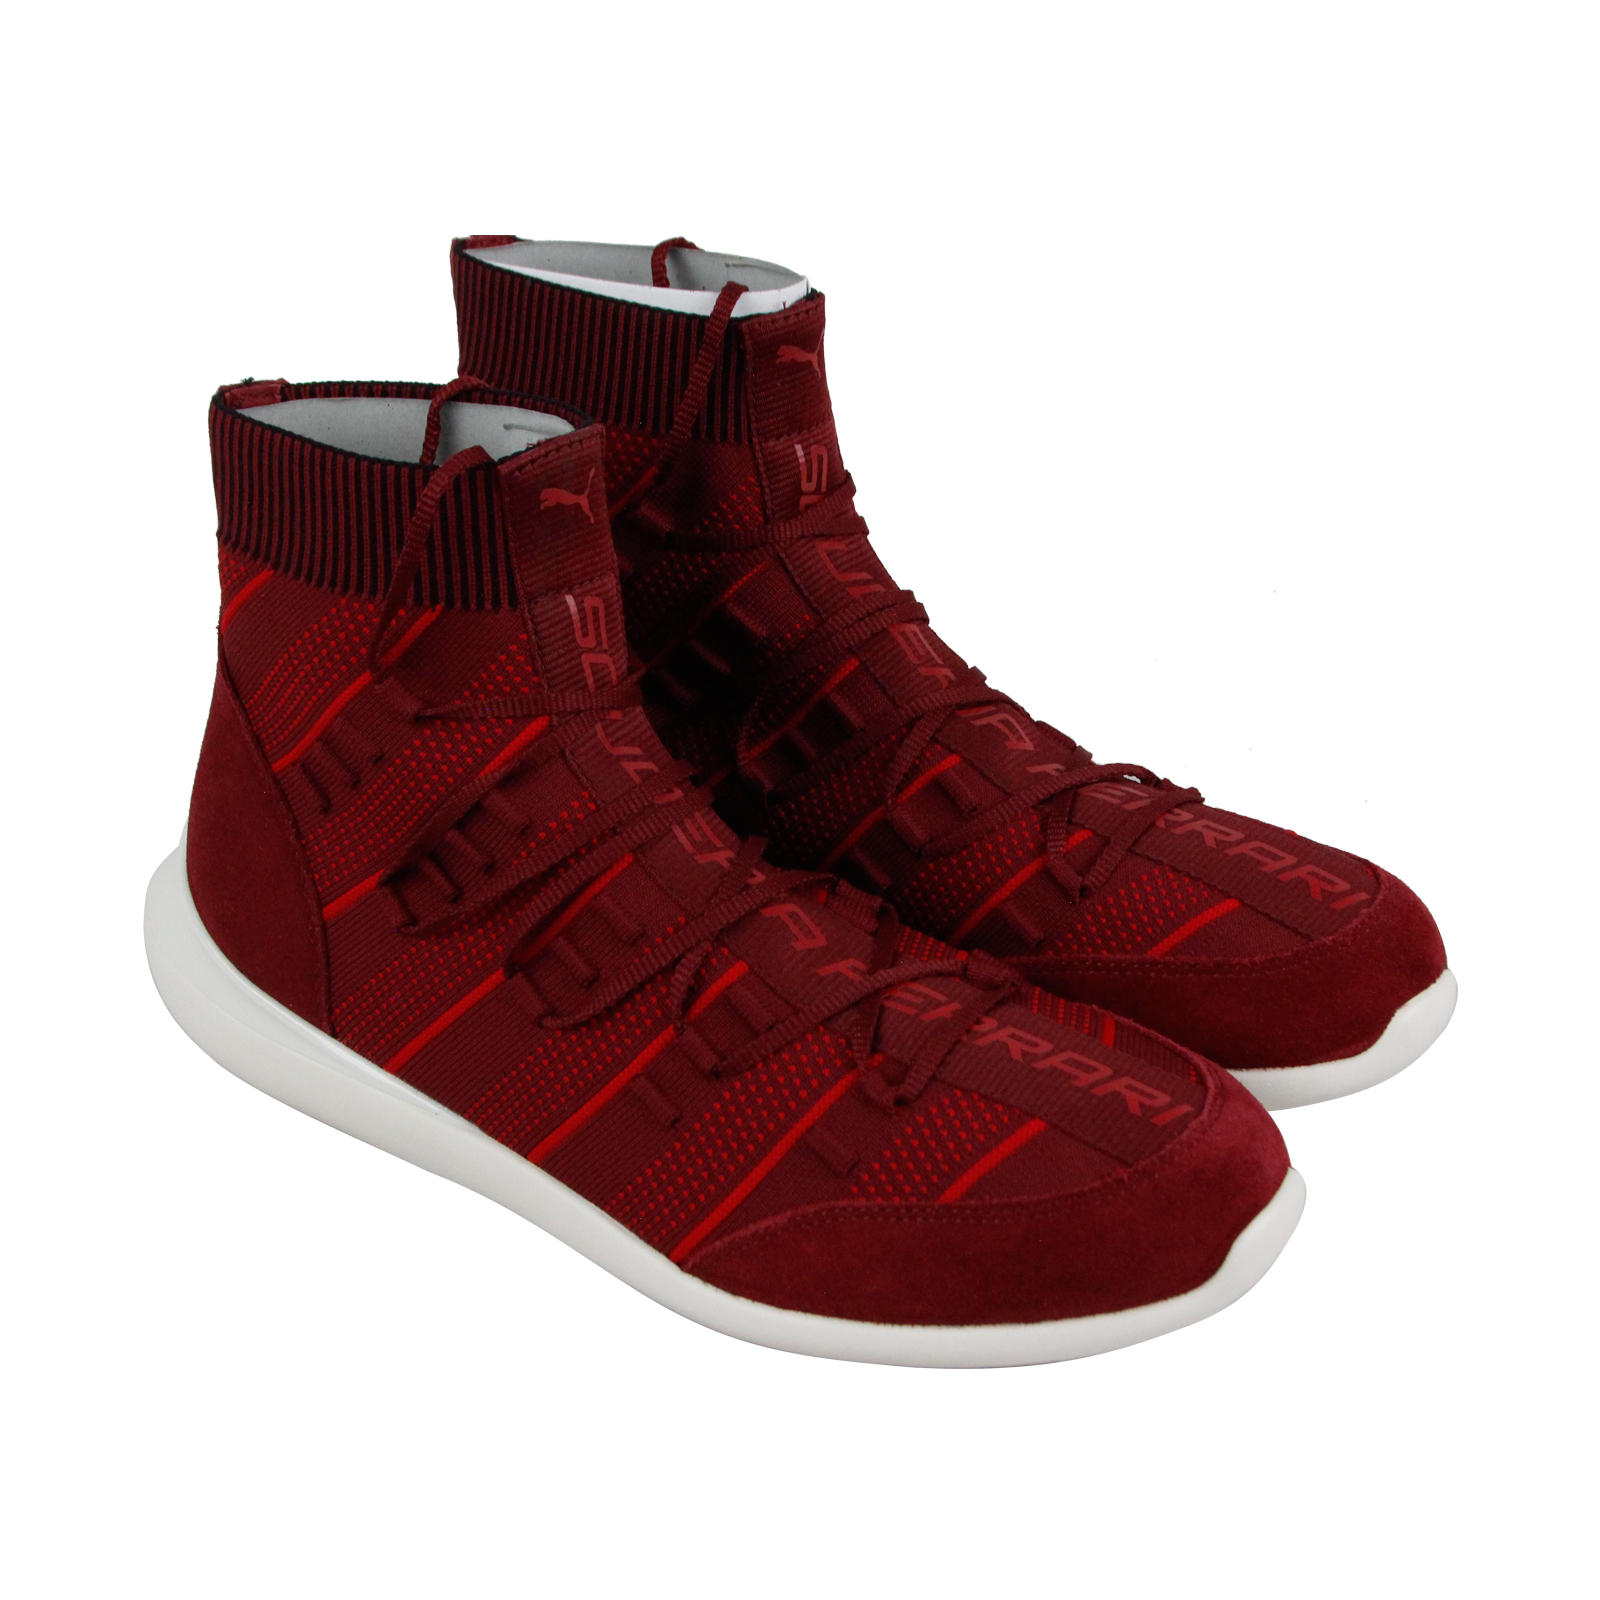 Puma Sf Evo Cat I Fusefit Uomo Red Textile & Suede Athletic Training Scarpe